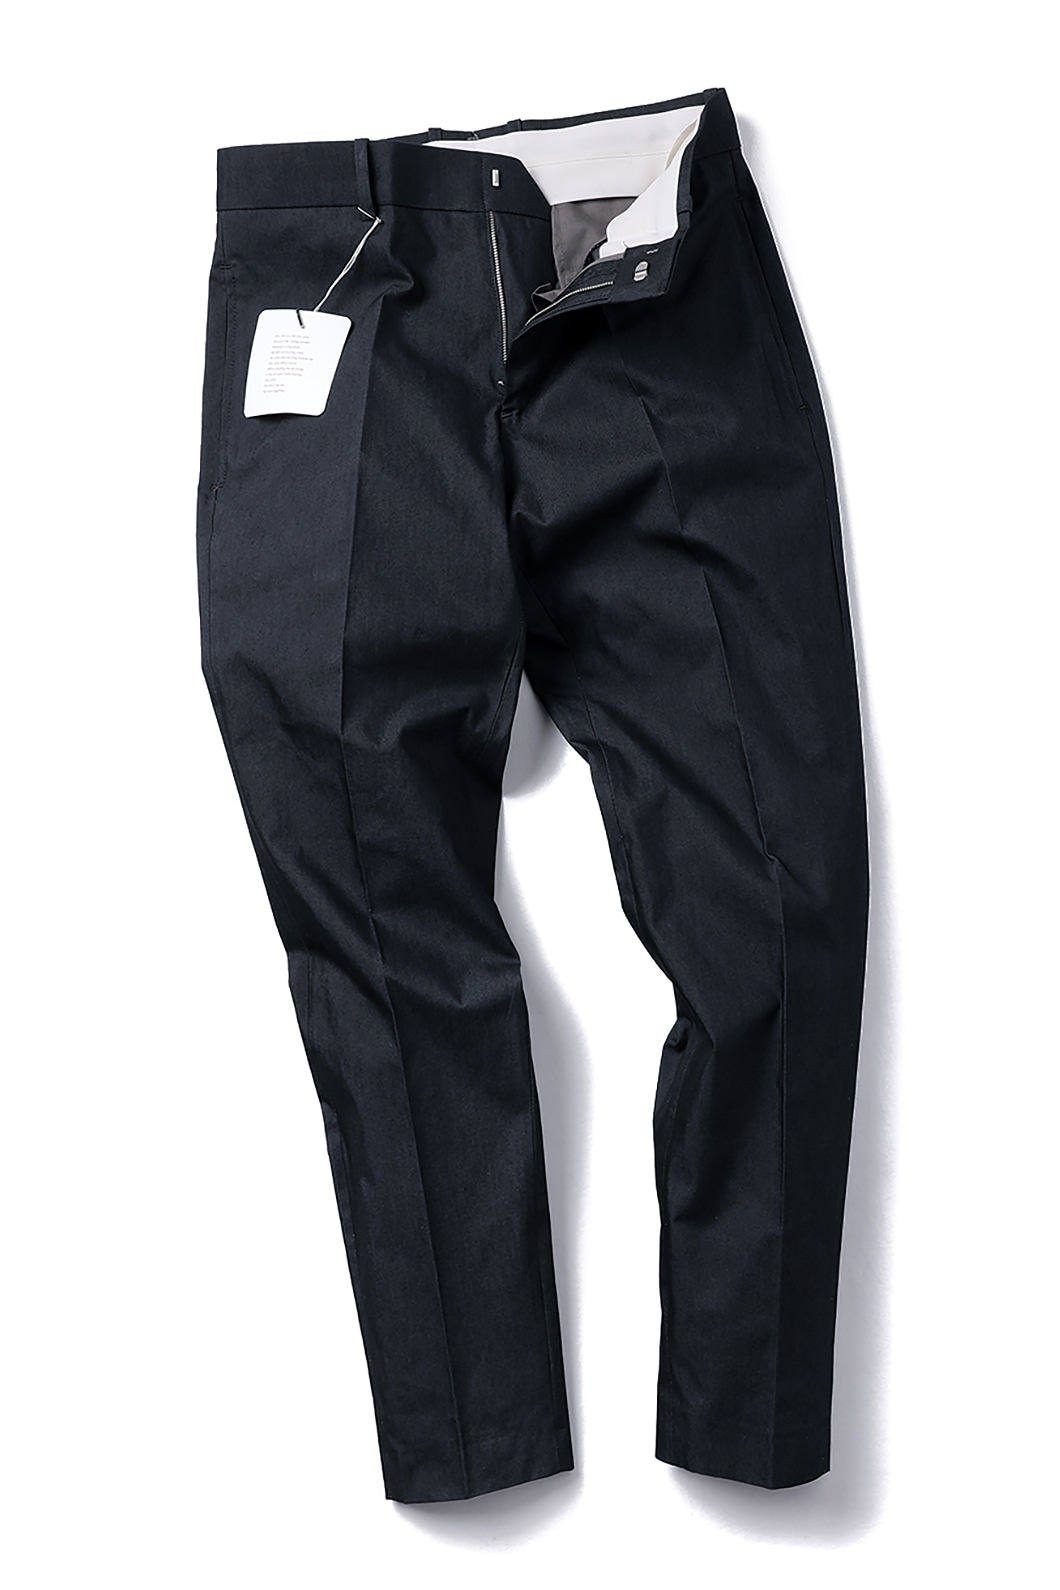 CASPER MODERN SLACKS PANTS-3COLOR